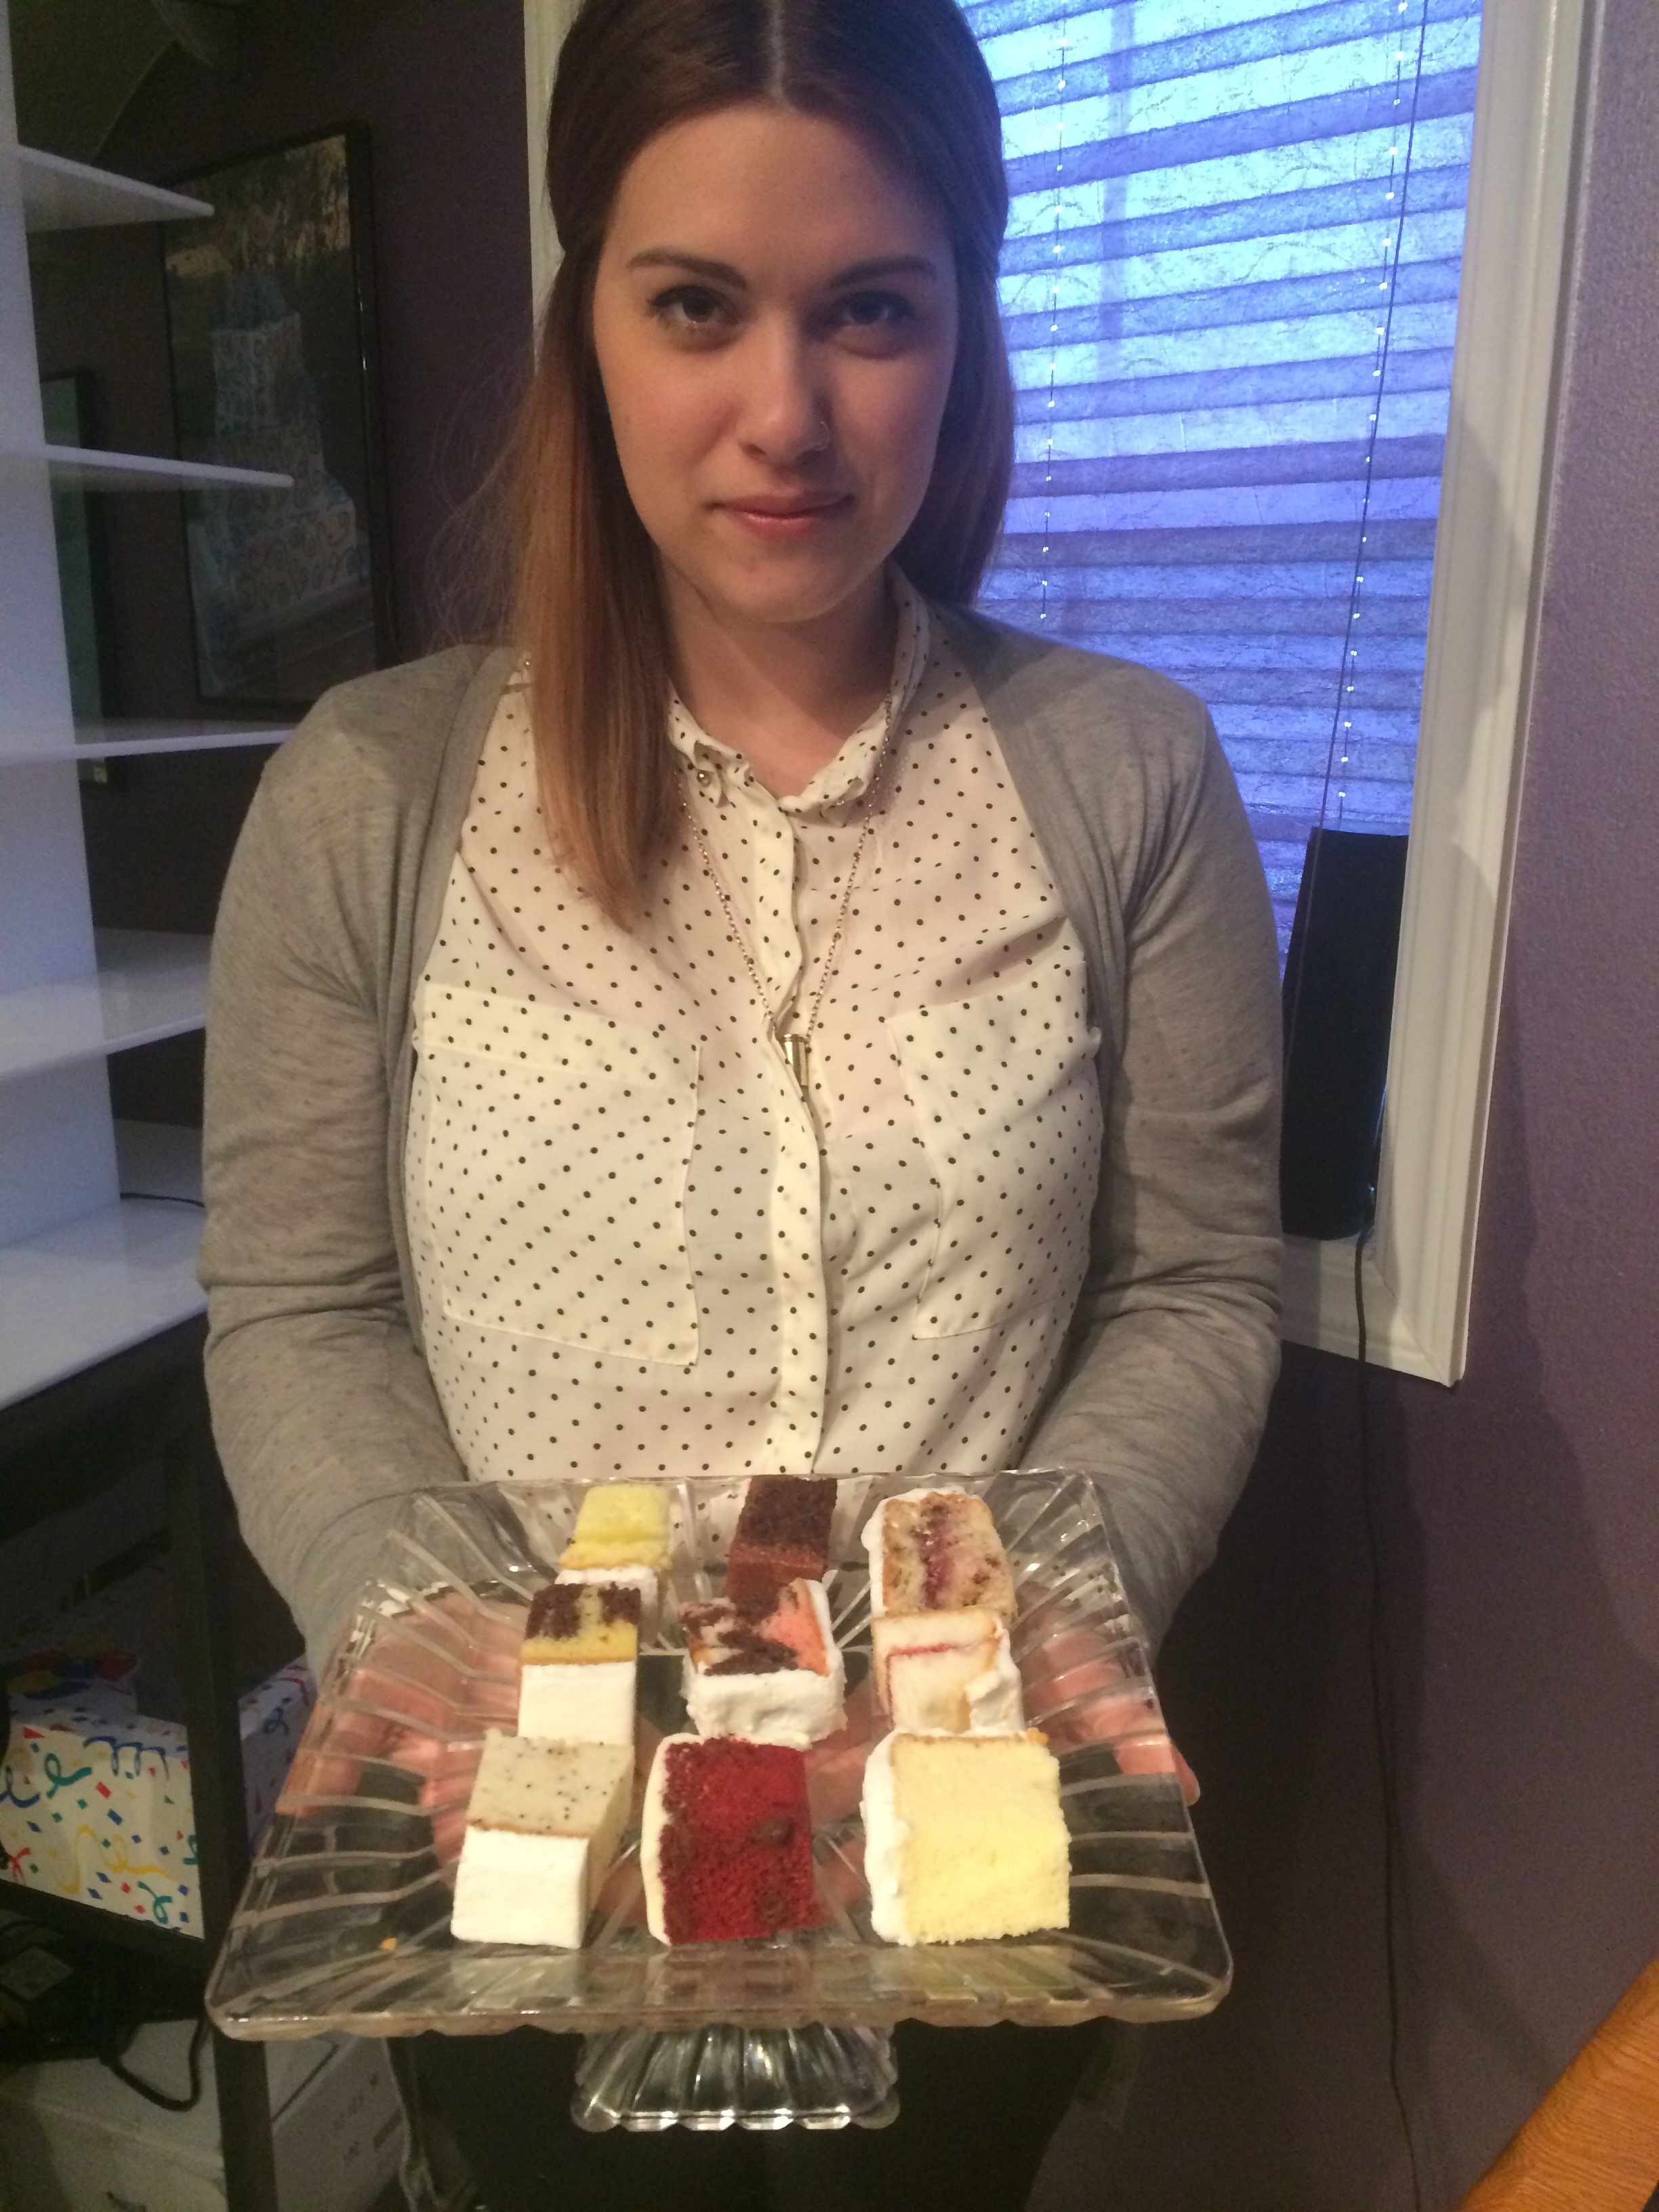 Cake tastings are one of the quintessential fun and exciting parts to planning any wedding. Be sure to enjoy it! Modeled by Chelsea.